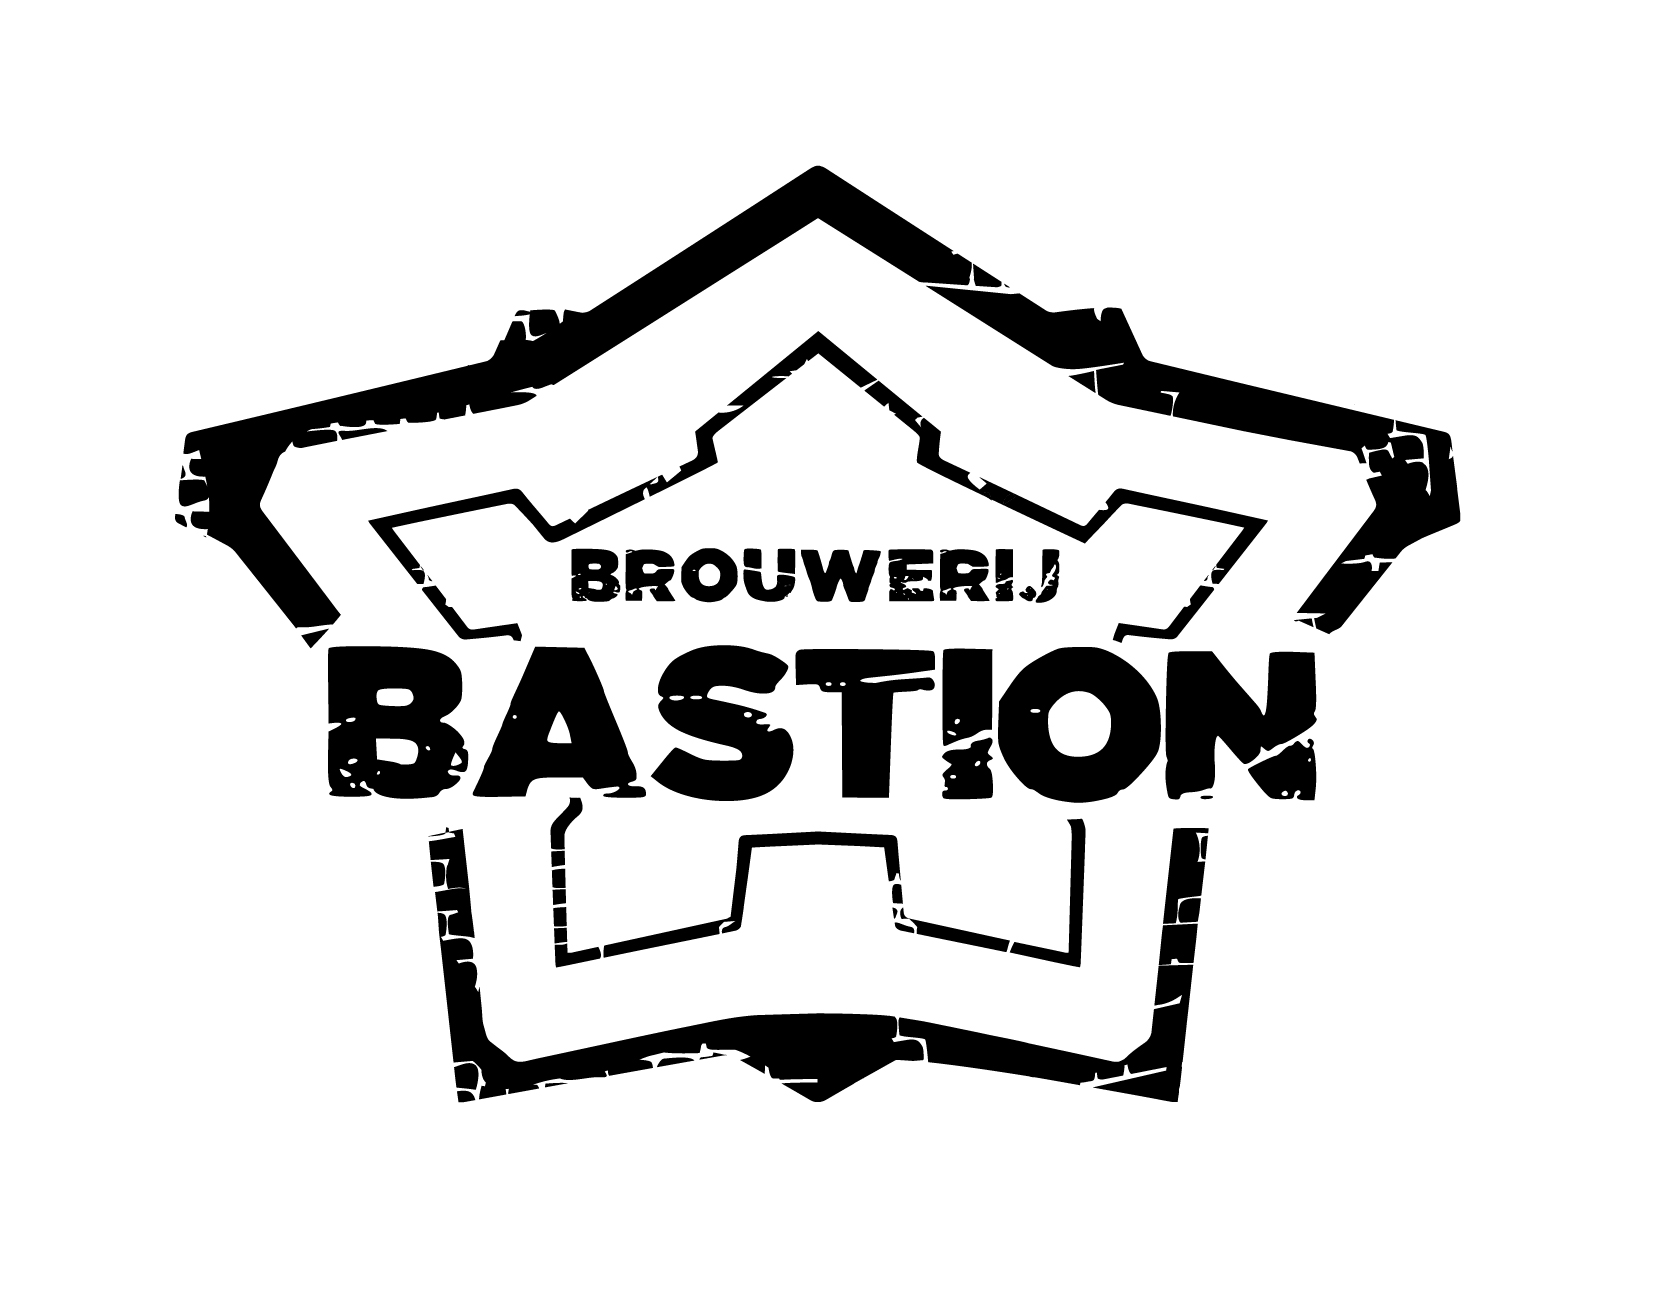 https://brouwerijbastion.be/wp-content/uploads/2020/06/Logo-brouwerij-bastion-groot_Tekengebied-1.jpg